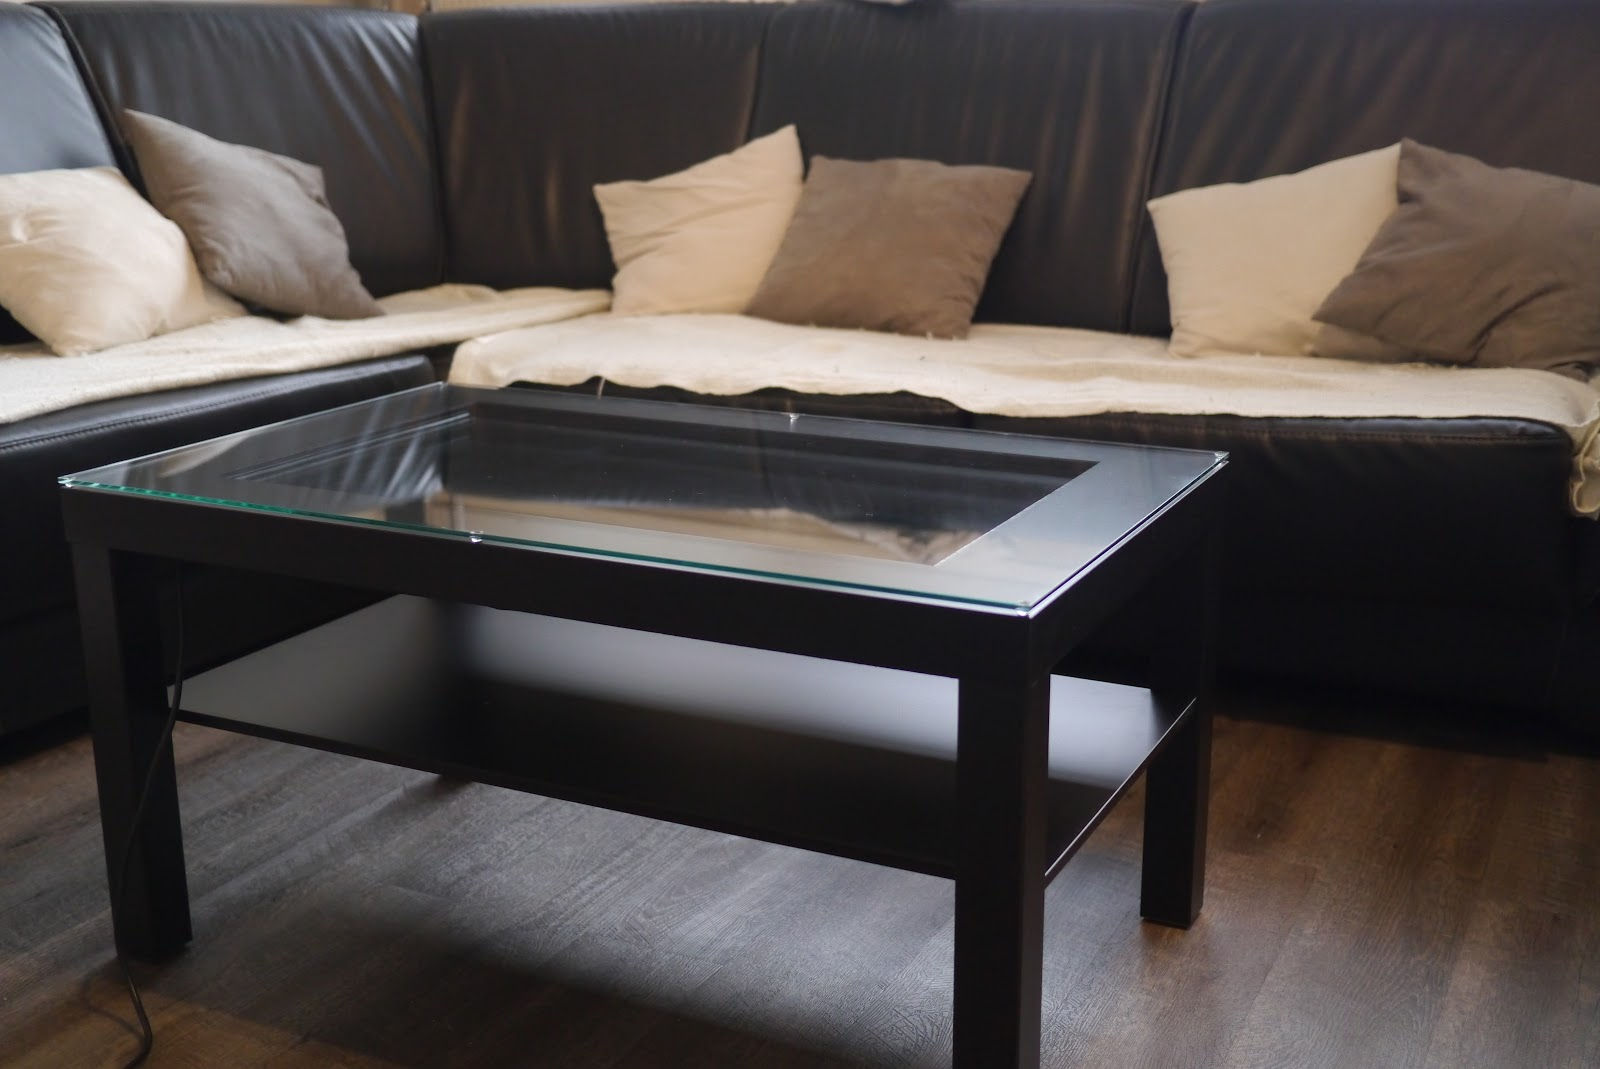 Le diy de droofy table basse tactile v2 pqlab - Table basse plateau en verre ...